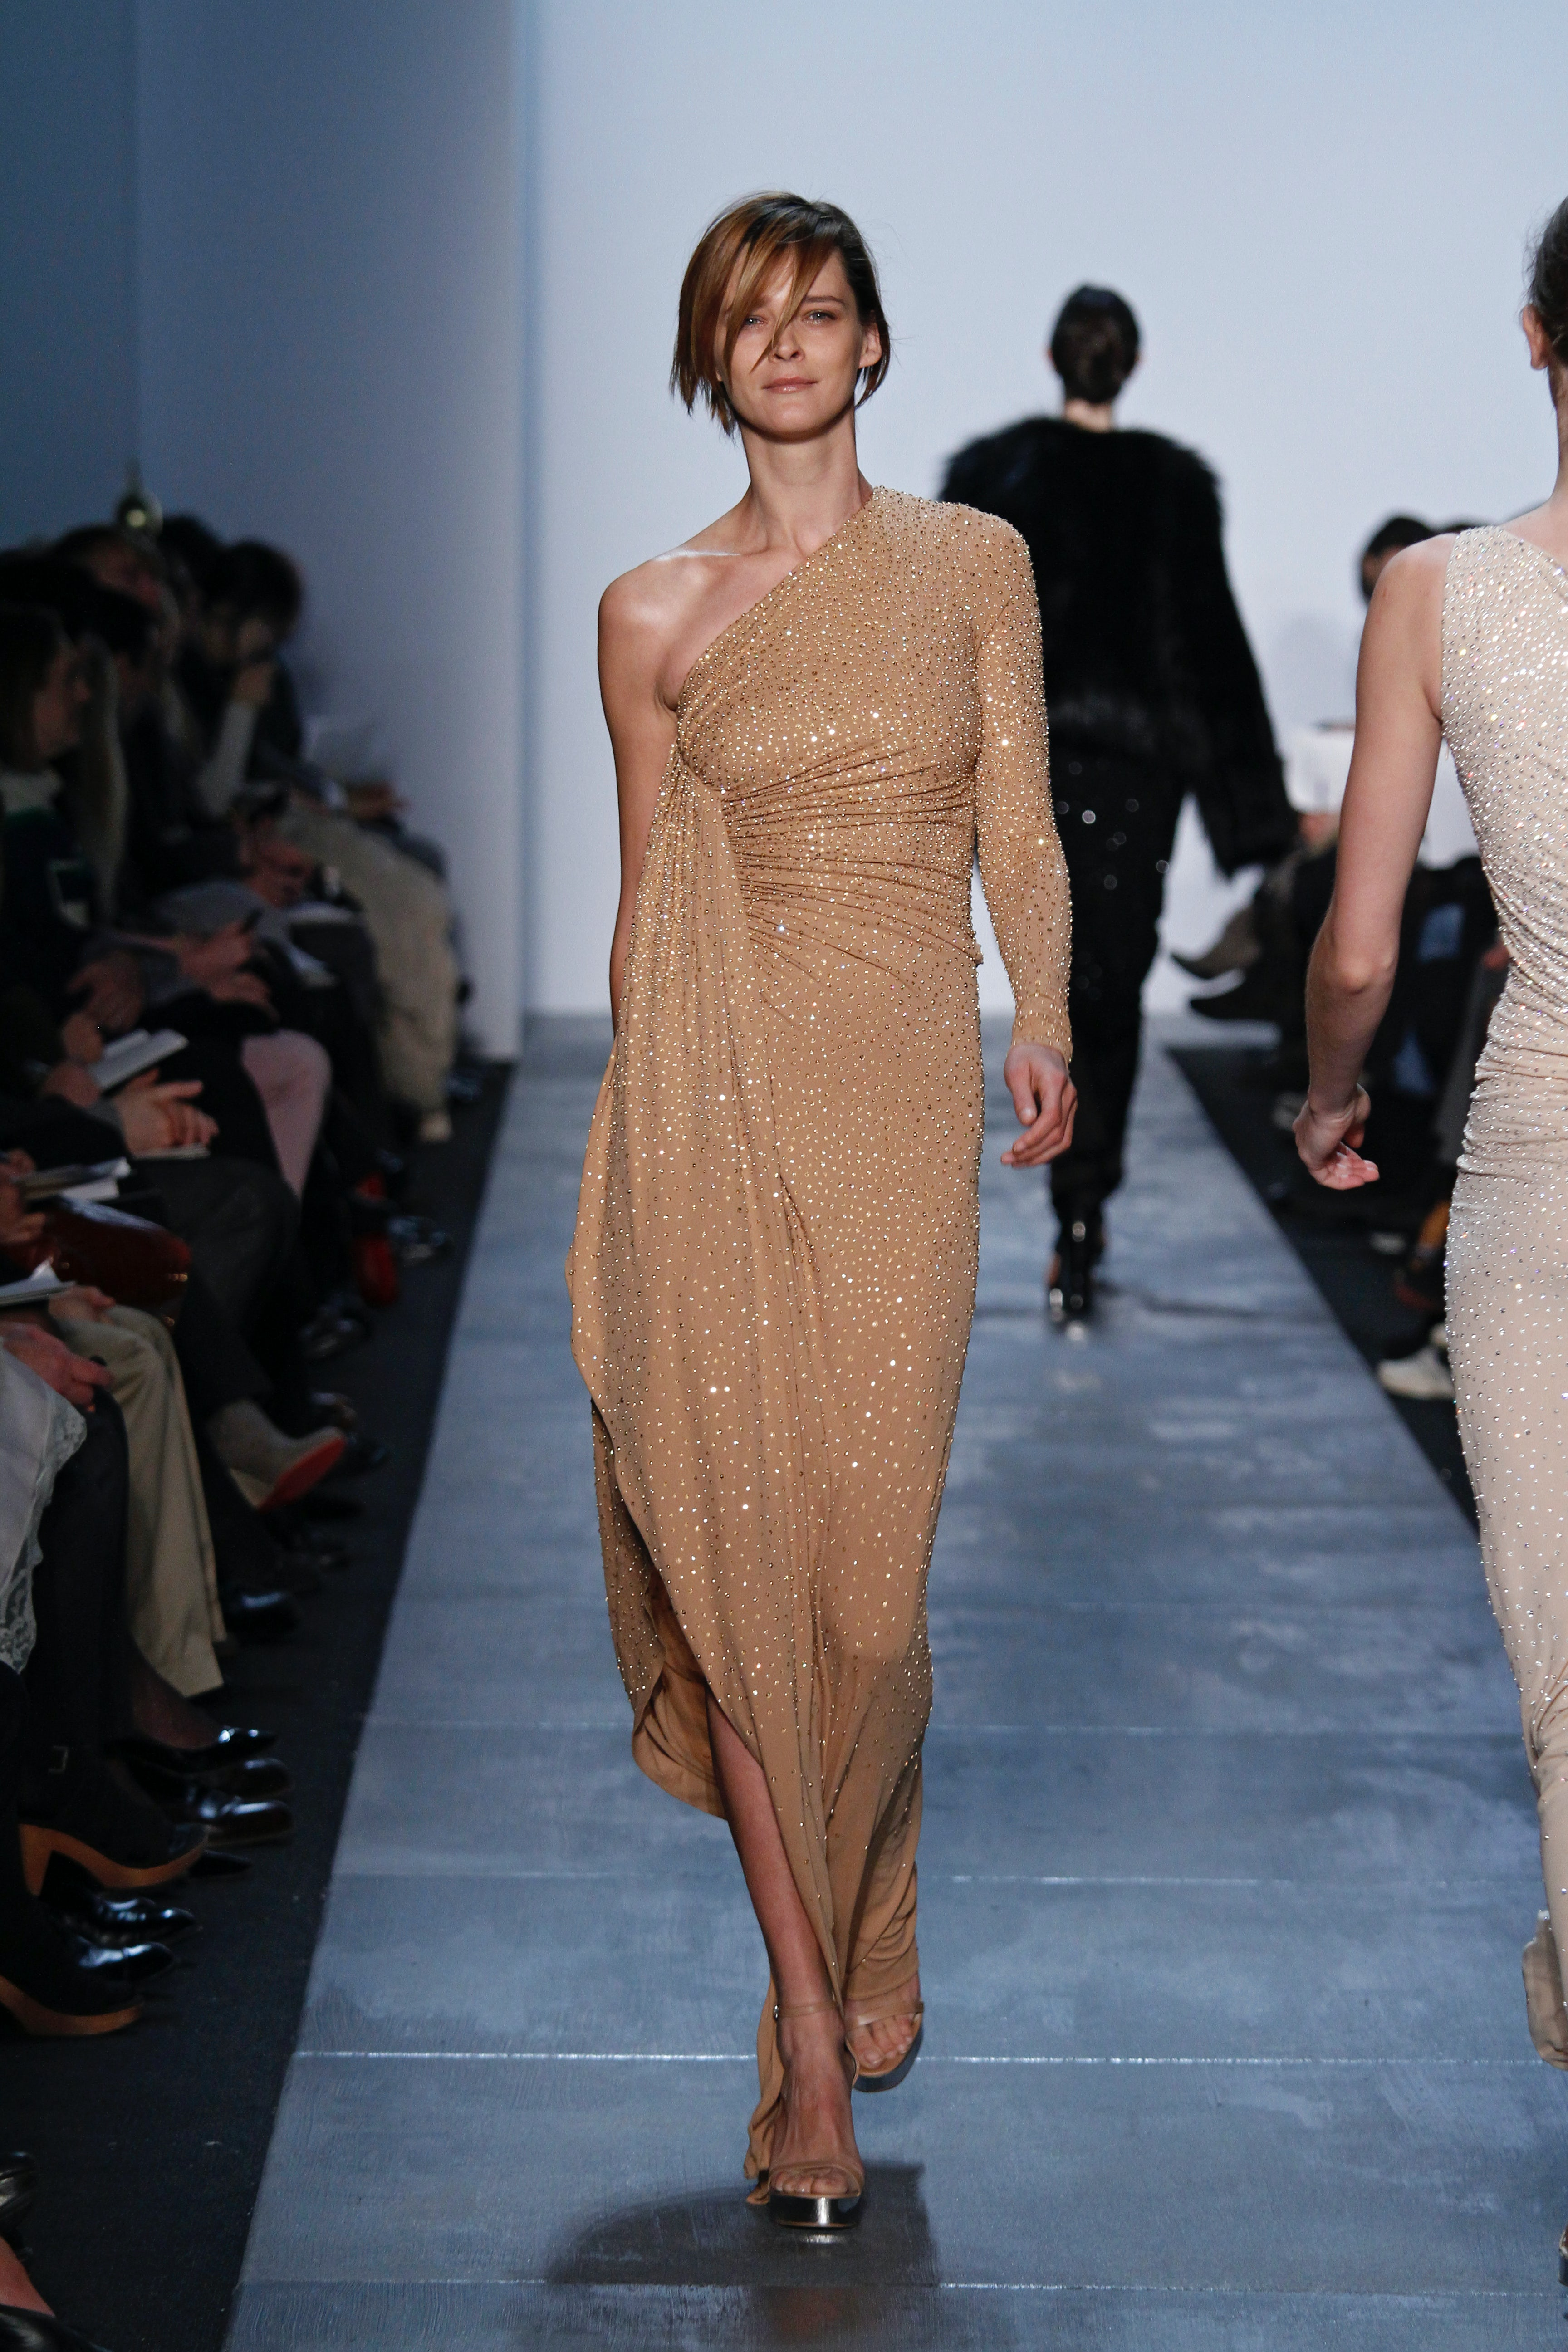 Look 63 from Michael Kors' 30th anniversary Autumn/Winter 2011 collection worn by Carmen Kass. Michael Kors.